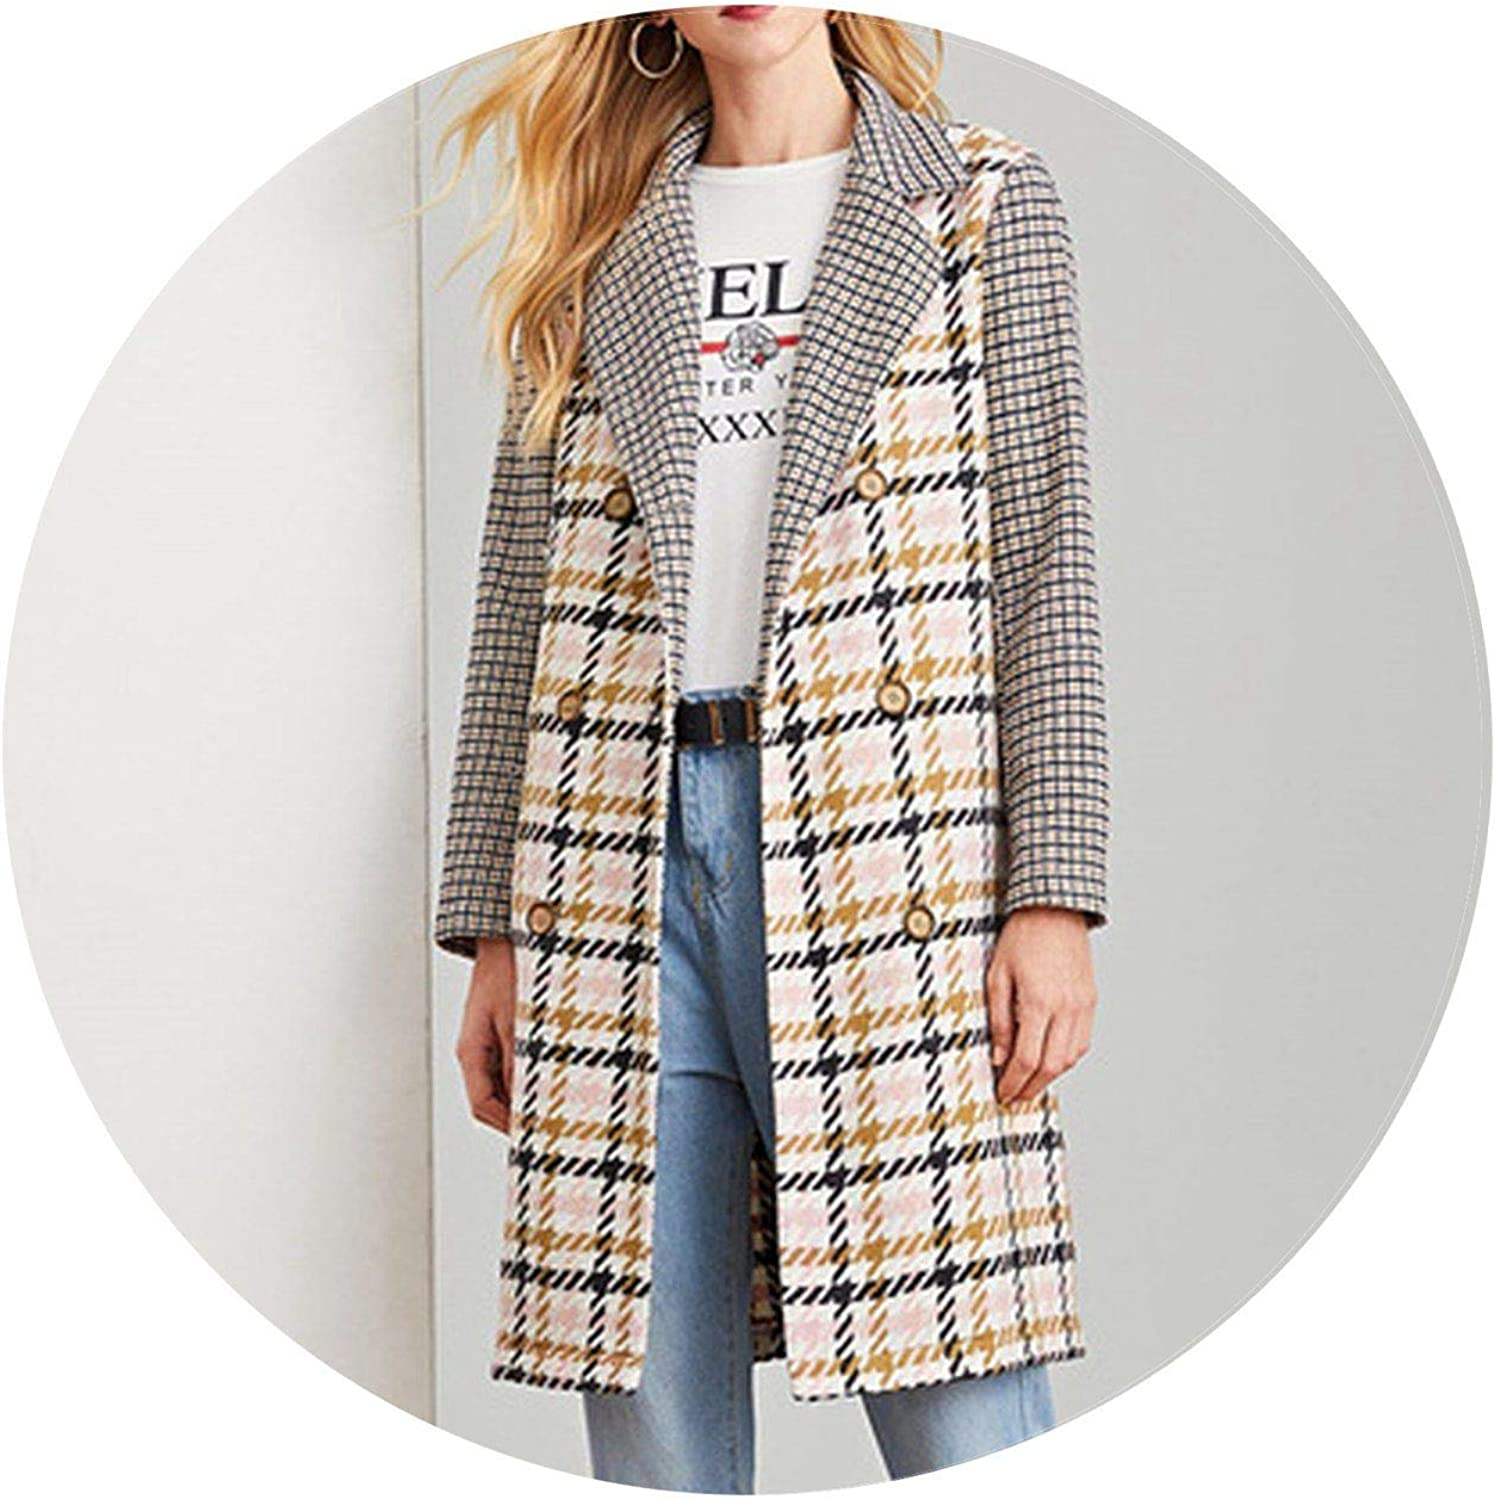 Jifnhtrs Elegant Double Breasted Notched Neck Plaid Coat Women Coats Outerwear